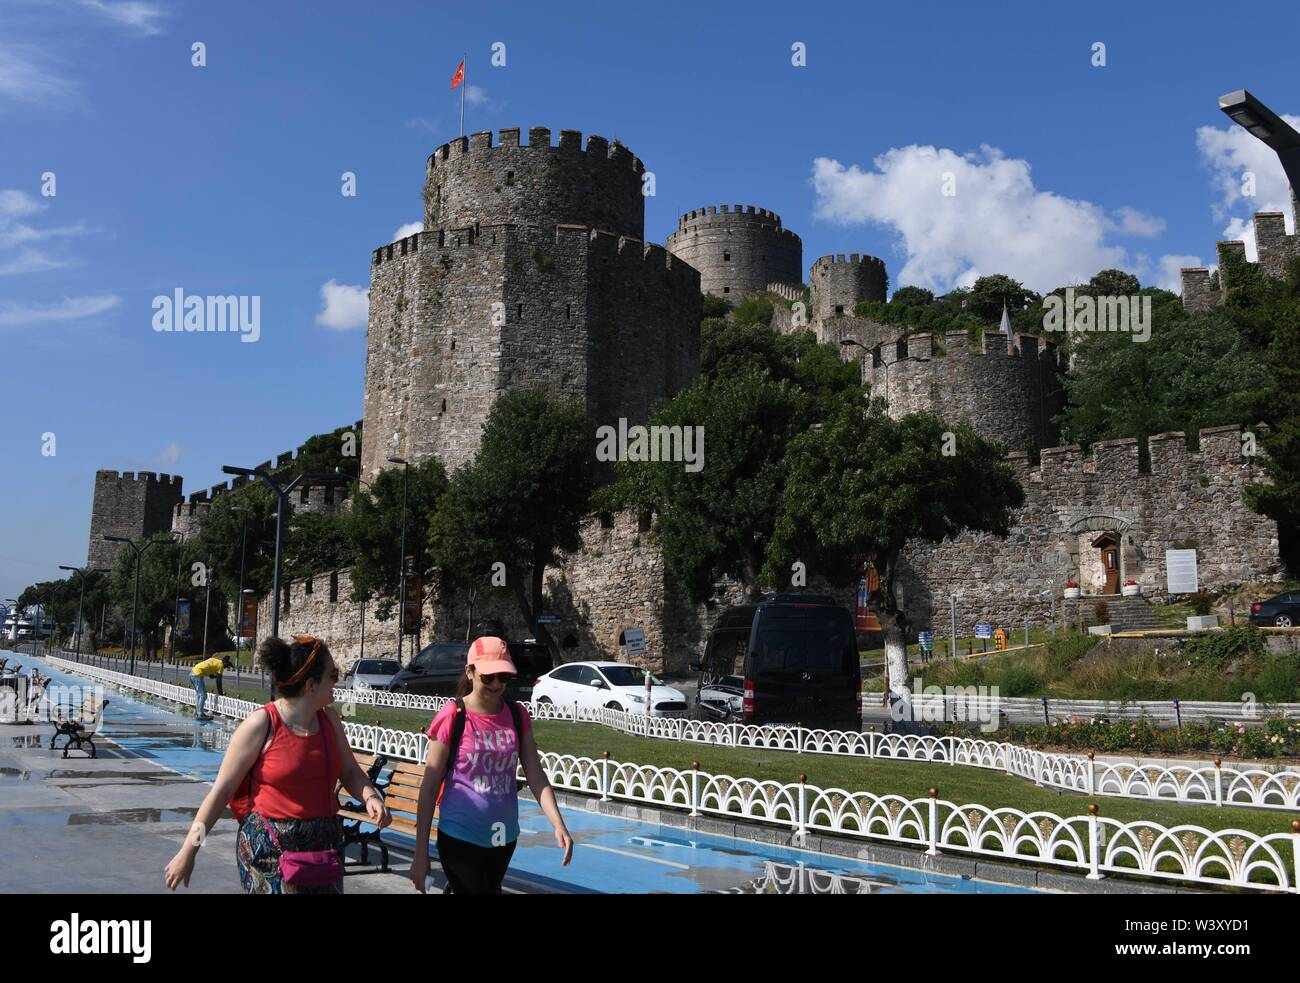 Istanbul, Turkey. 18th July, 2019. Two tourists walk in front of the Rumeli Fortress in Istanbul, Turkey, July 18, 2019. Turkey's biggest city Istanbul allured a record number of tourists during the first five months of this year, thanks to an environment of peace, affordable prices and diversified tourism products. Between January and May, 5.4 million foreigners visited Istanbul, marking a year-on-year increase of 11 percent, according to the data unveiled by the Istanbul Provincial Directorate of Culture and Tourism. Credit: Xu Suhui/Xinhua/Alamy Live News - Stock Image